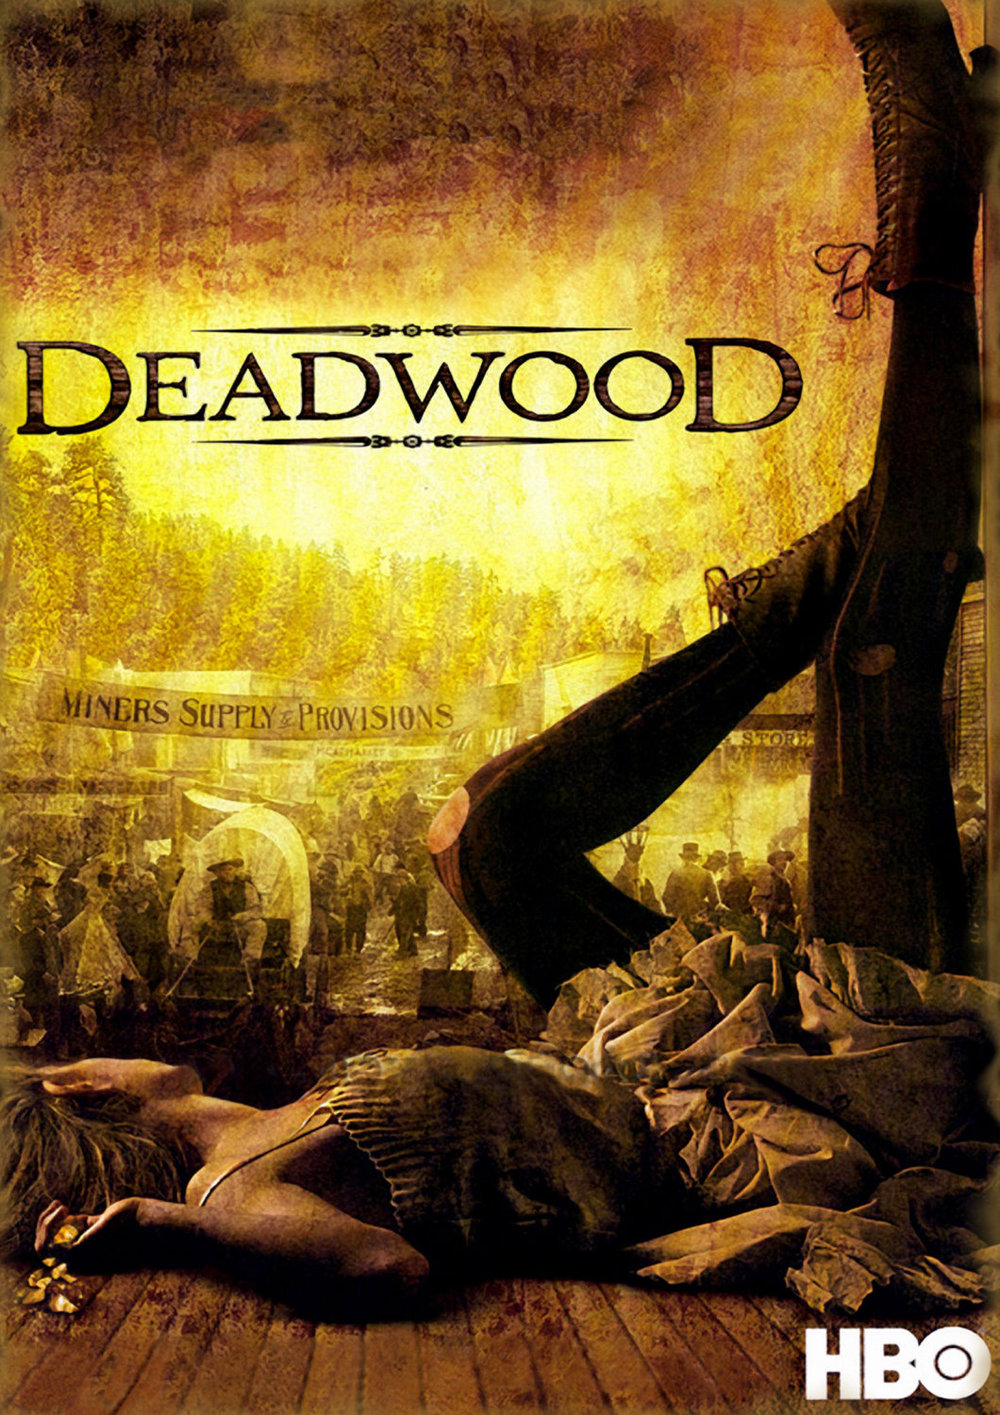 deadwood-season-1-sezonul-1-poster-2.jpg